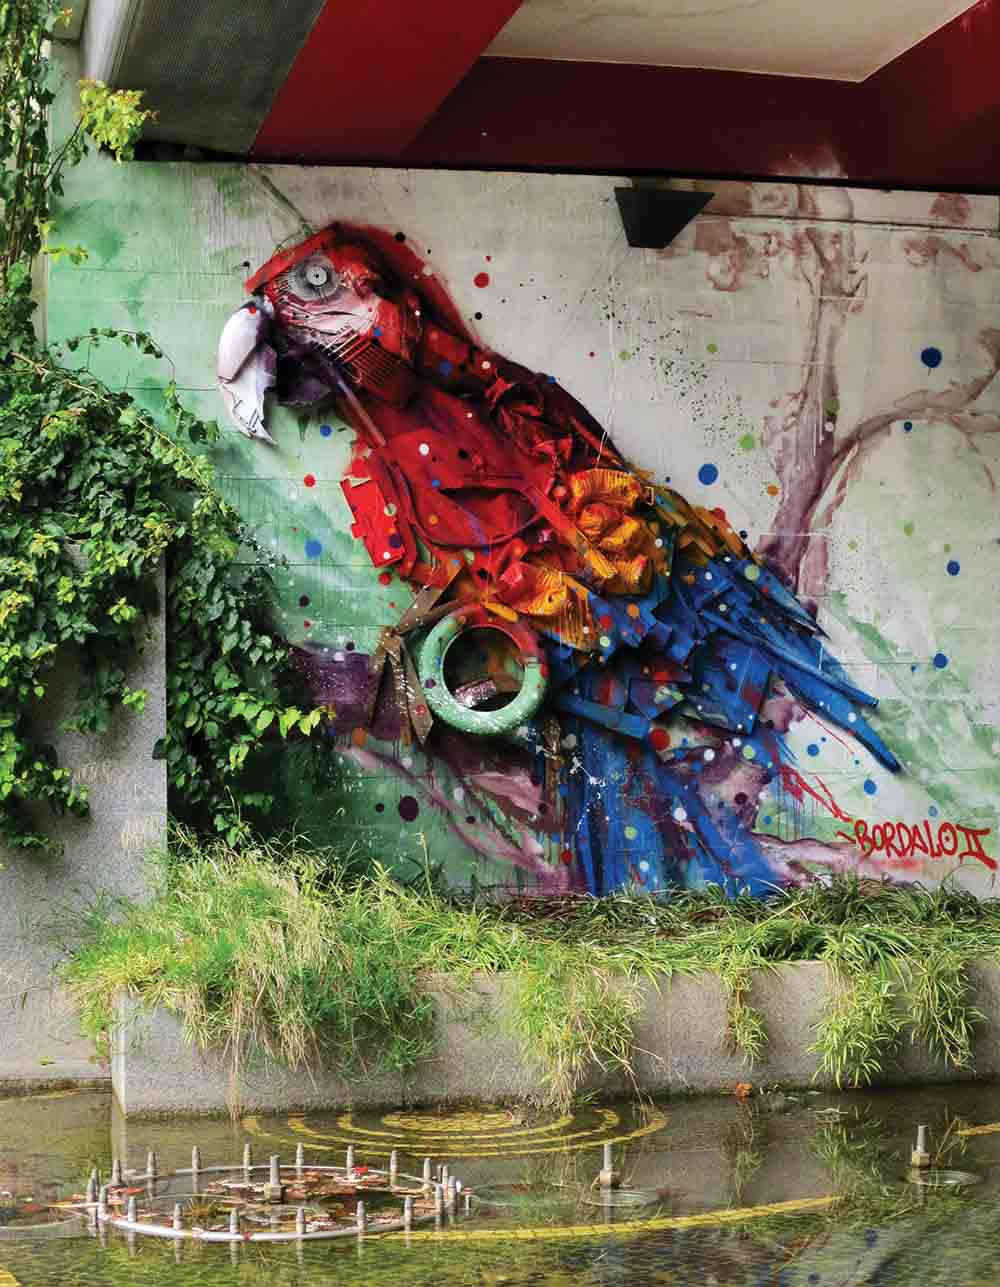 Bordalo II parrot trash art